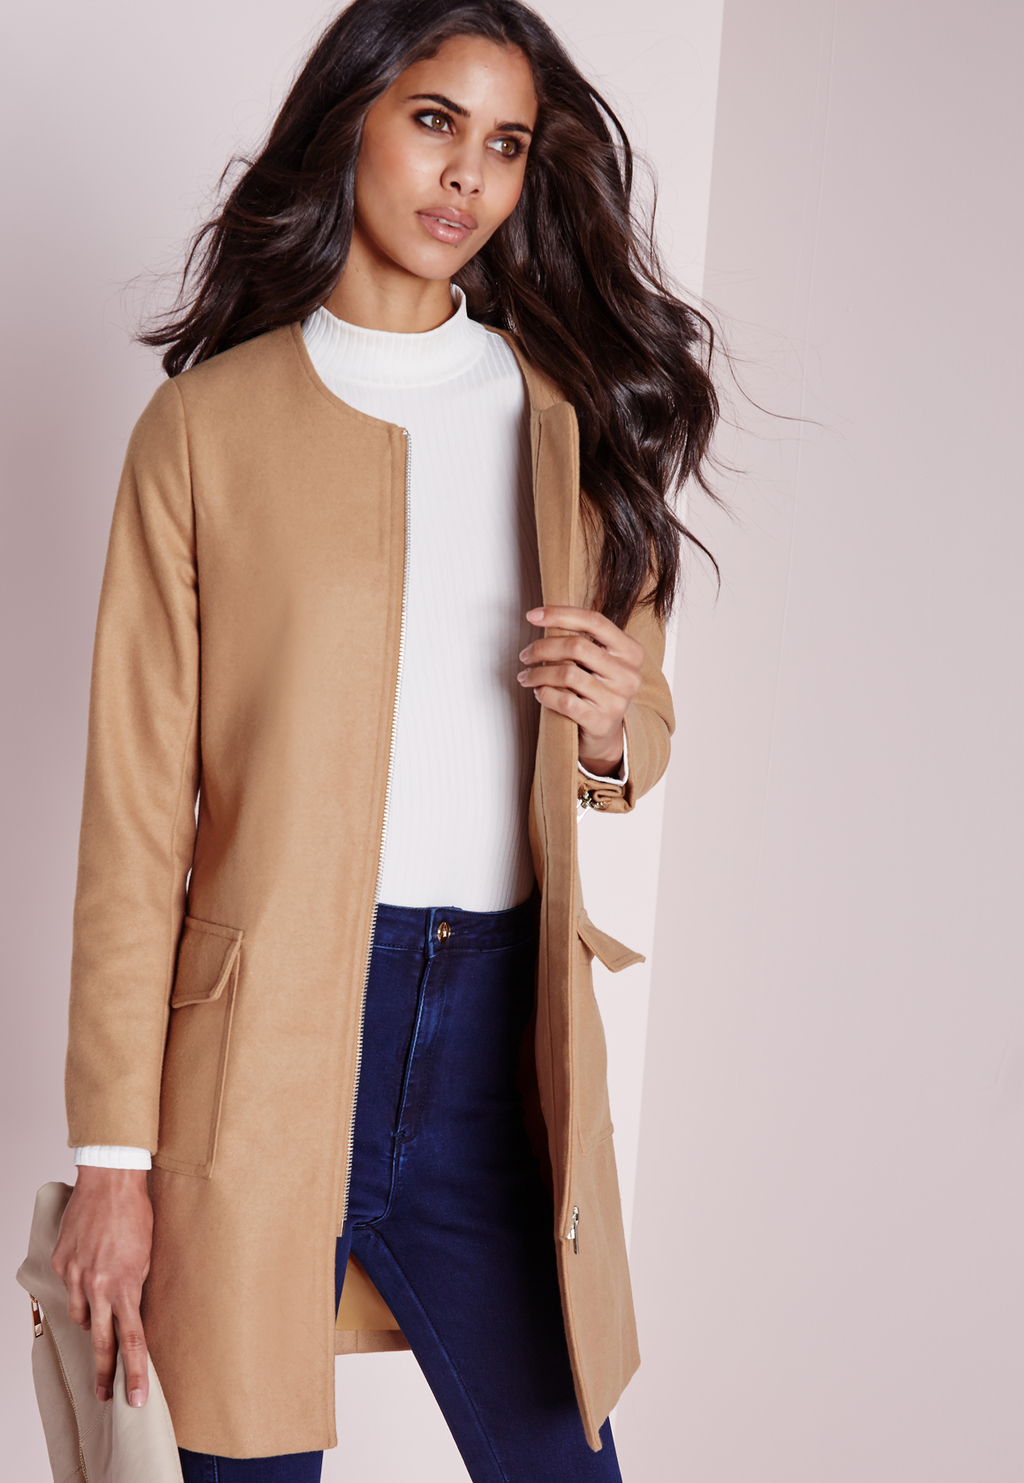 Collarless Zip Wool Jacket Camel, Beige - pattern: plain; style: single breasted blazer; collar: round collar/collarless; fit: slim fit; predominant colour: camel; occasions: casual, work, creative work; fibres: wool - 100%; length: mid thigh; sleeve length: long sleeve; sleeve style: standard; collar break: low/open; pattern type: fabric; texture group: woven light midweight; season: a/w 2015; wardrobe: basic